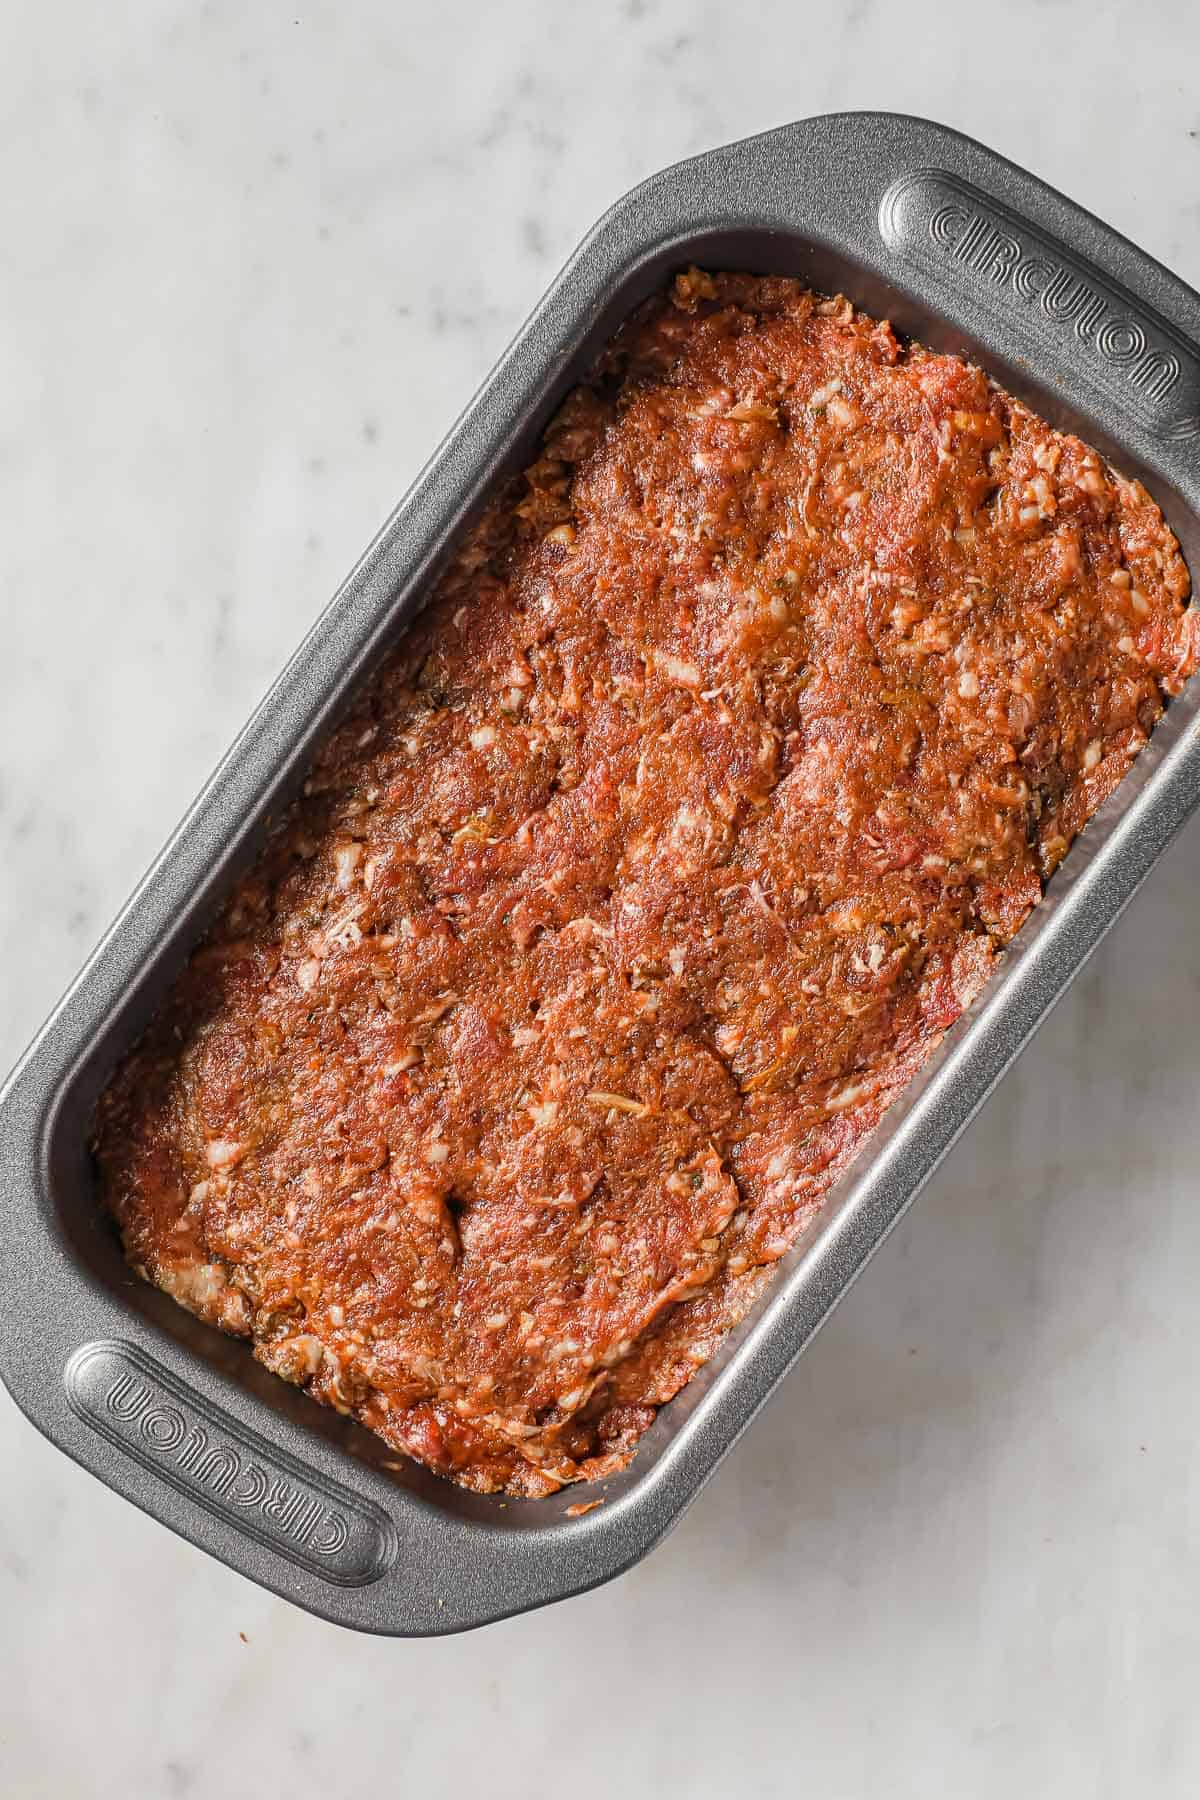 ingredients for meatloaf - beef, sausage, tomato paste, eggs, onion soup, garlic all mixed up and in a loaf pan